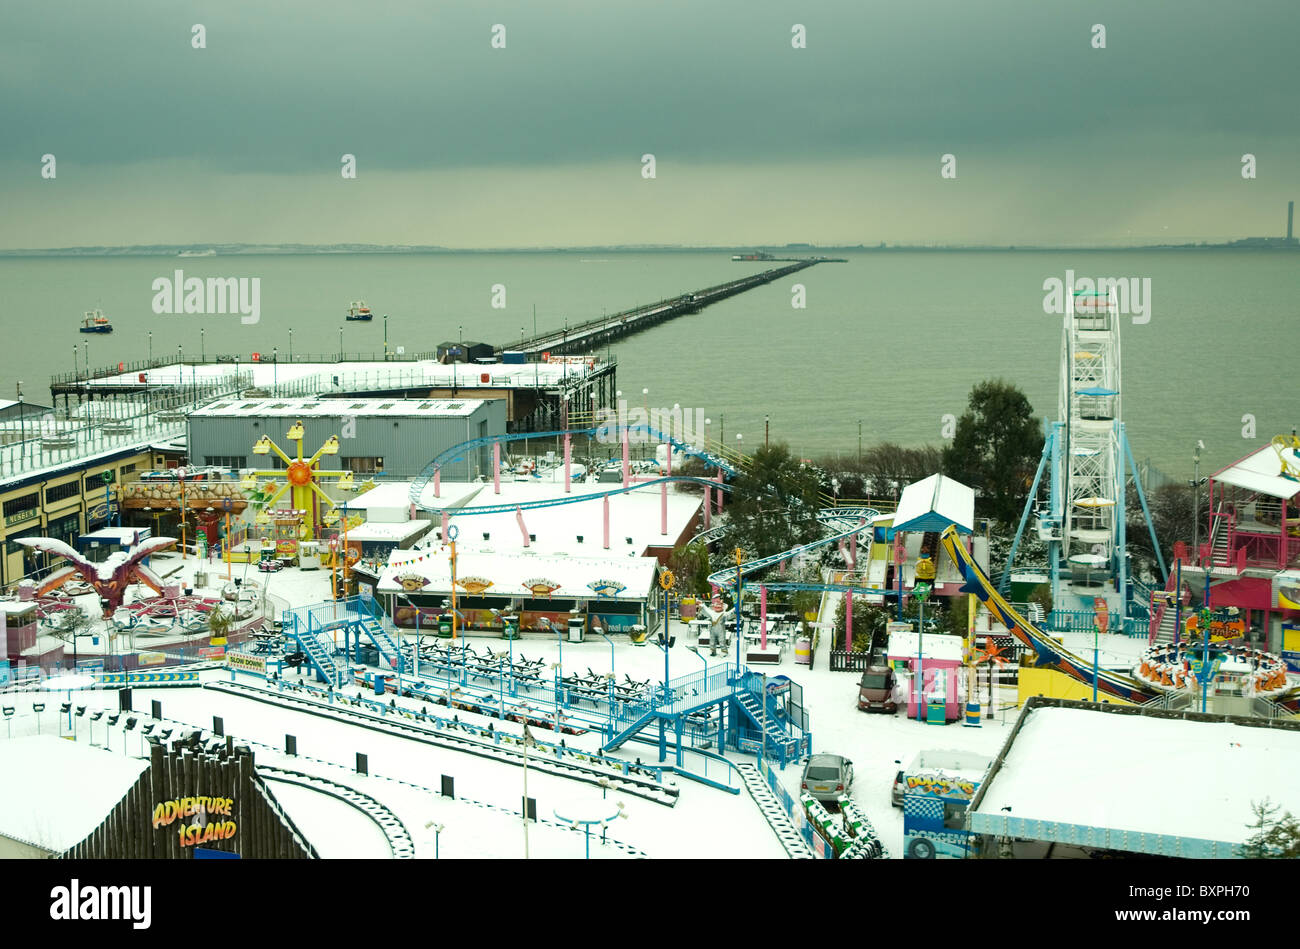 Adventure Island, with Southend pier, in the snow. - Stock Image